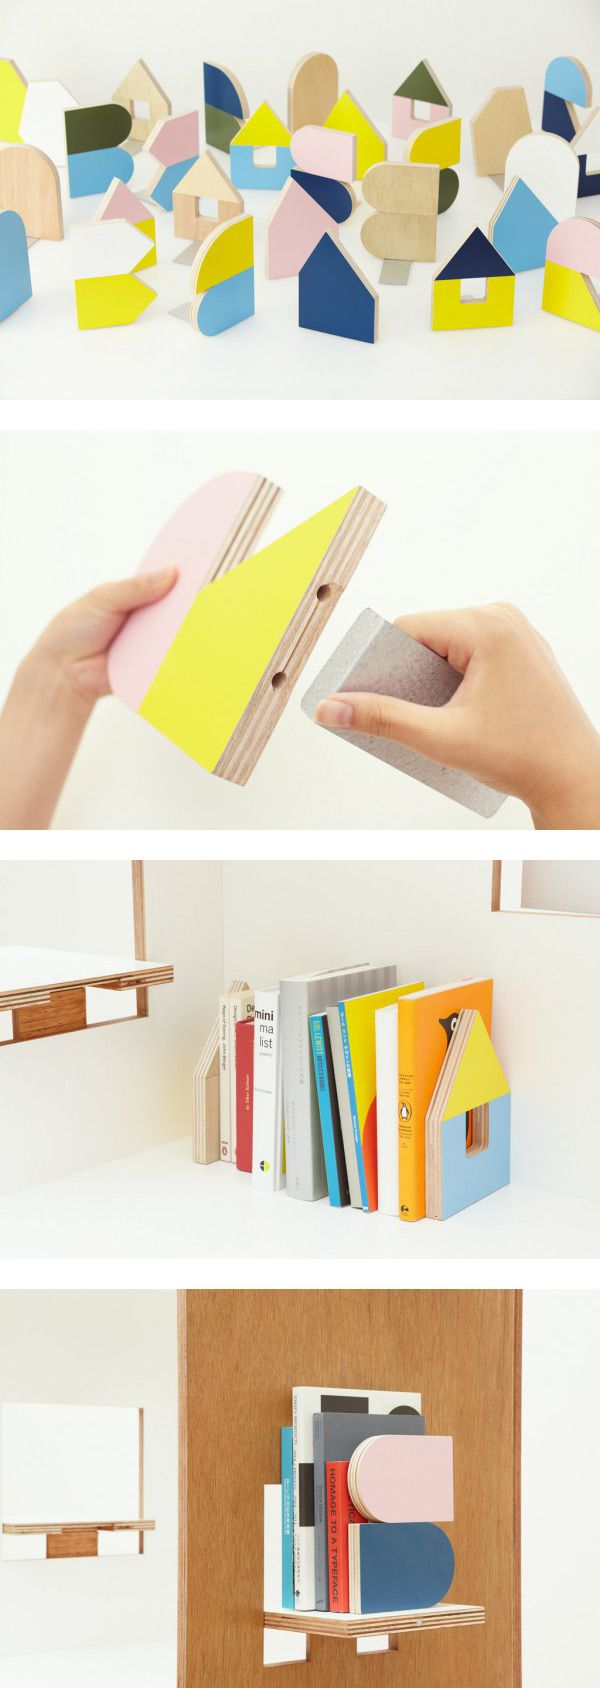 adaptable book stands | Torafu architects